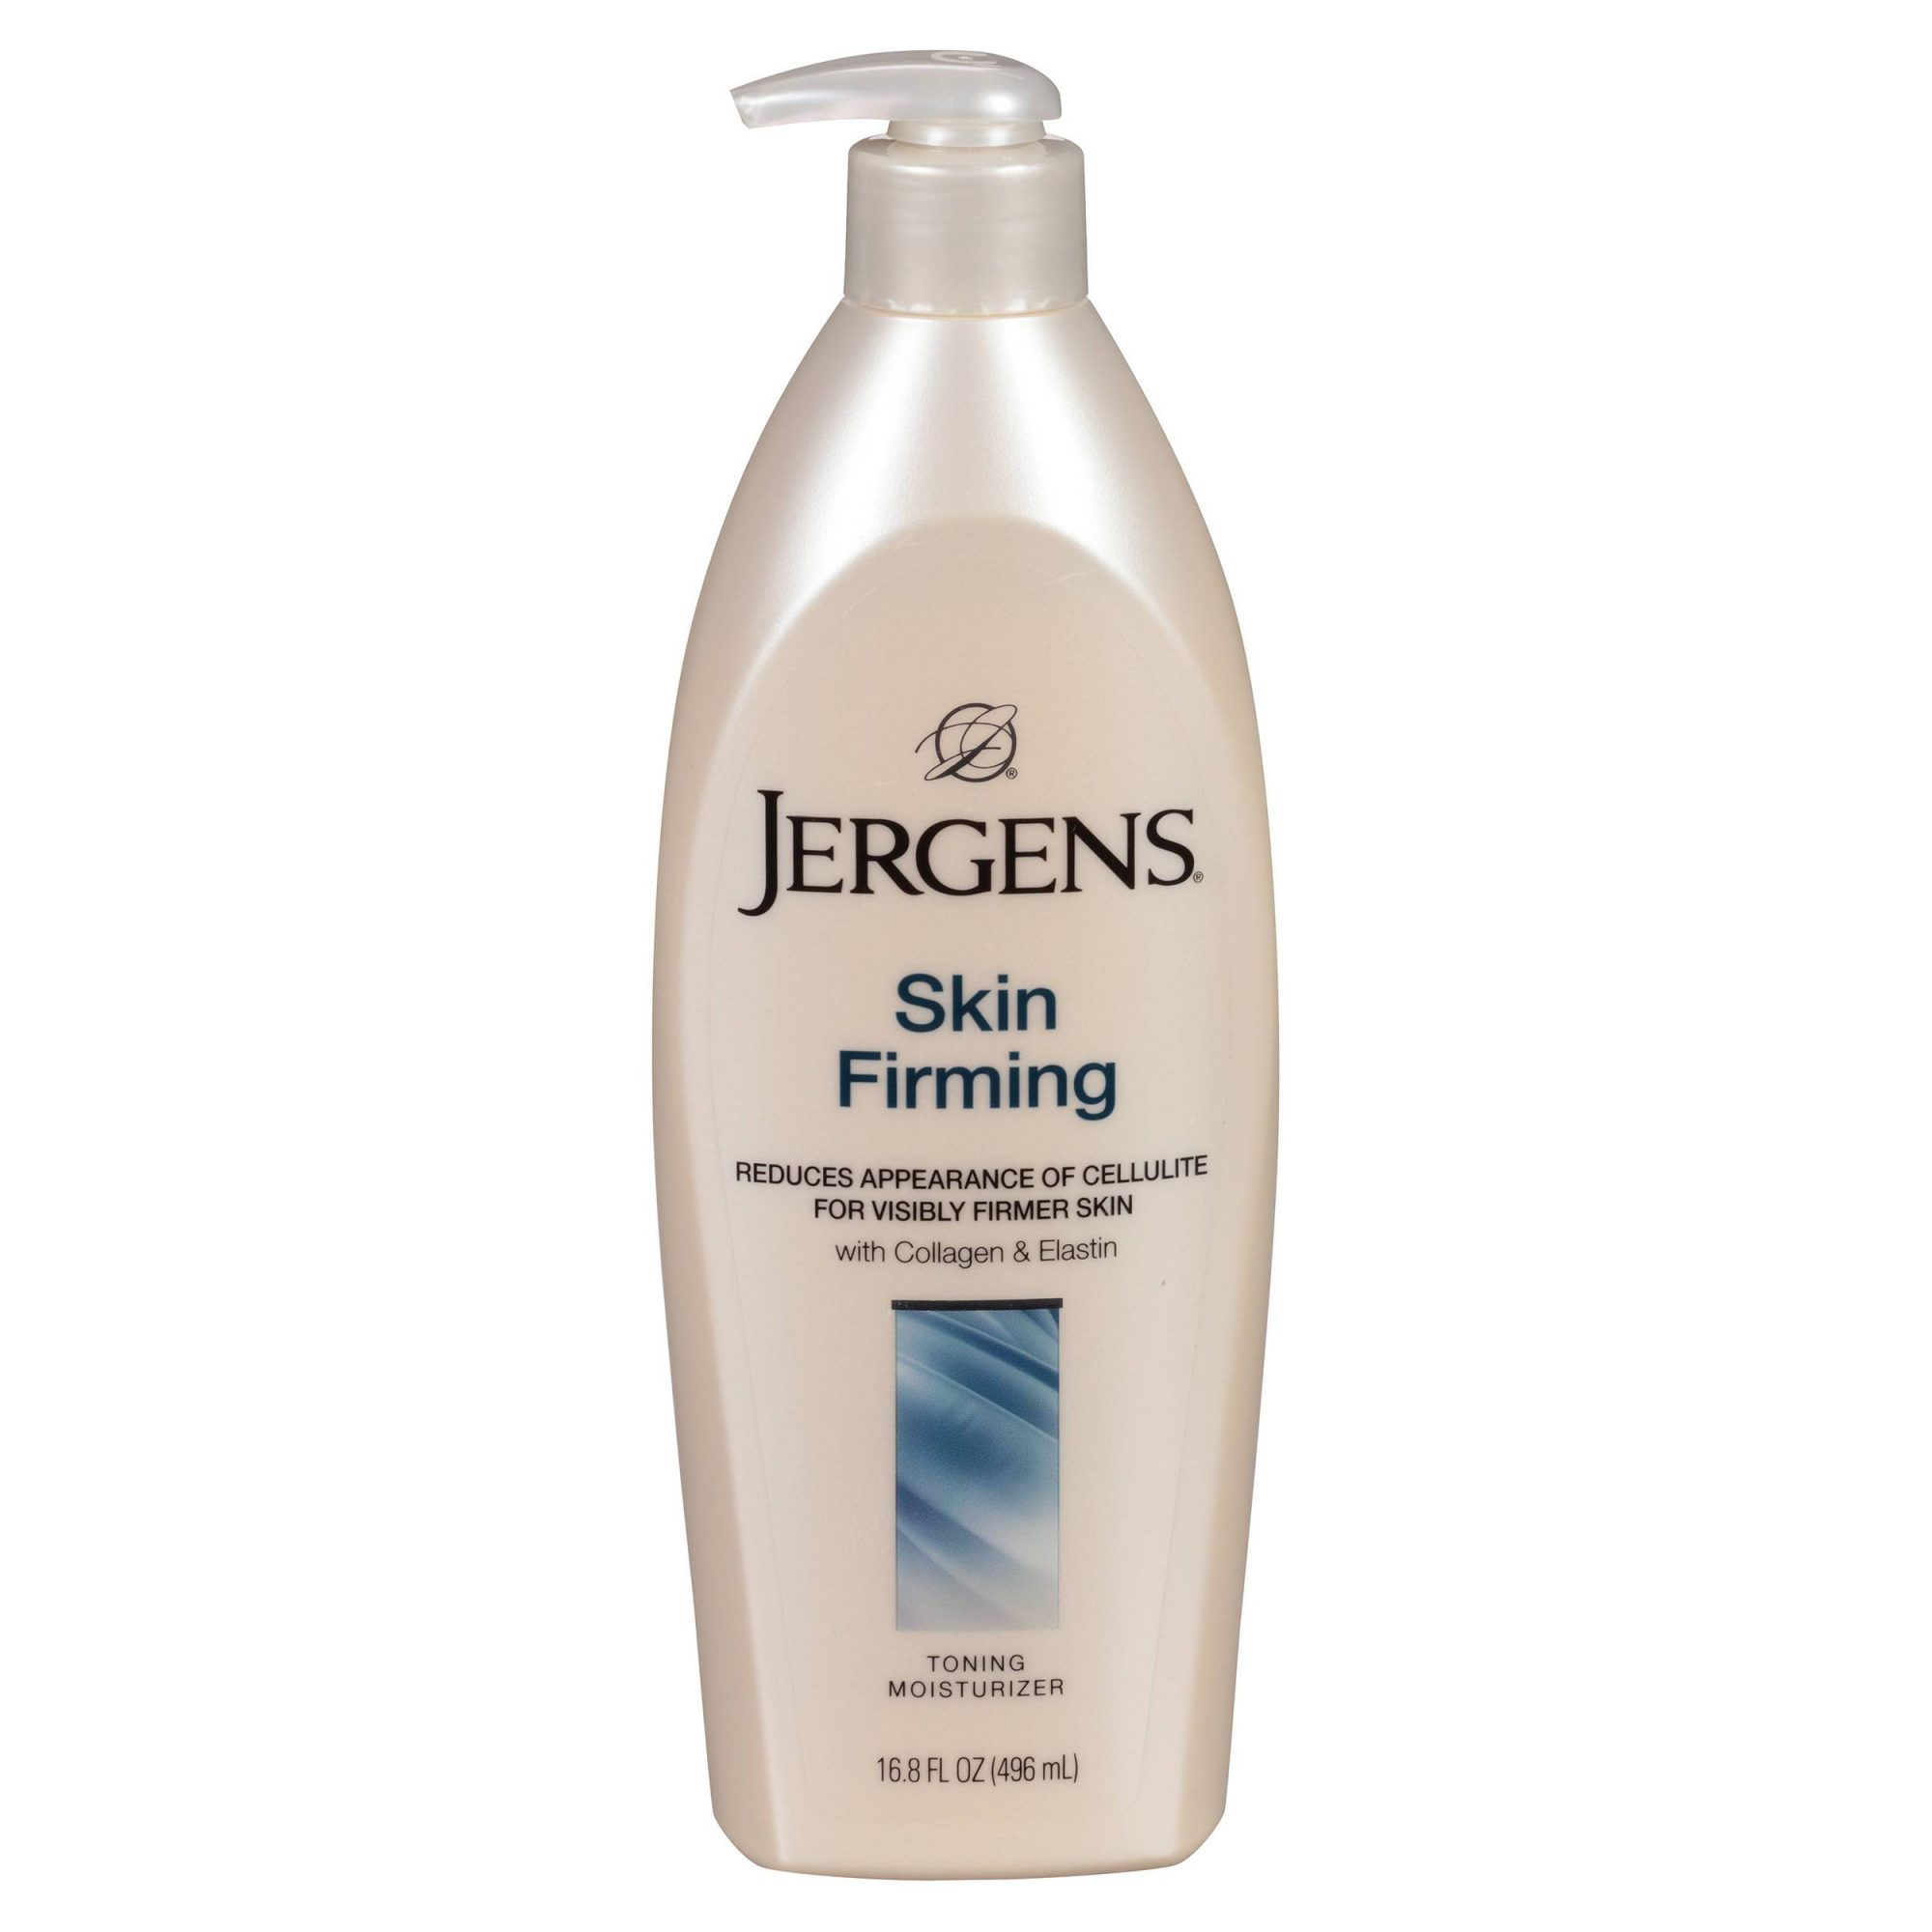 Firming: Jergens Skin Firming Lotion